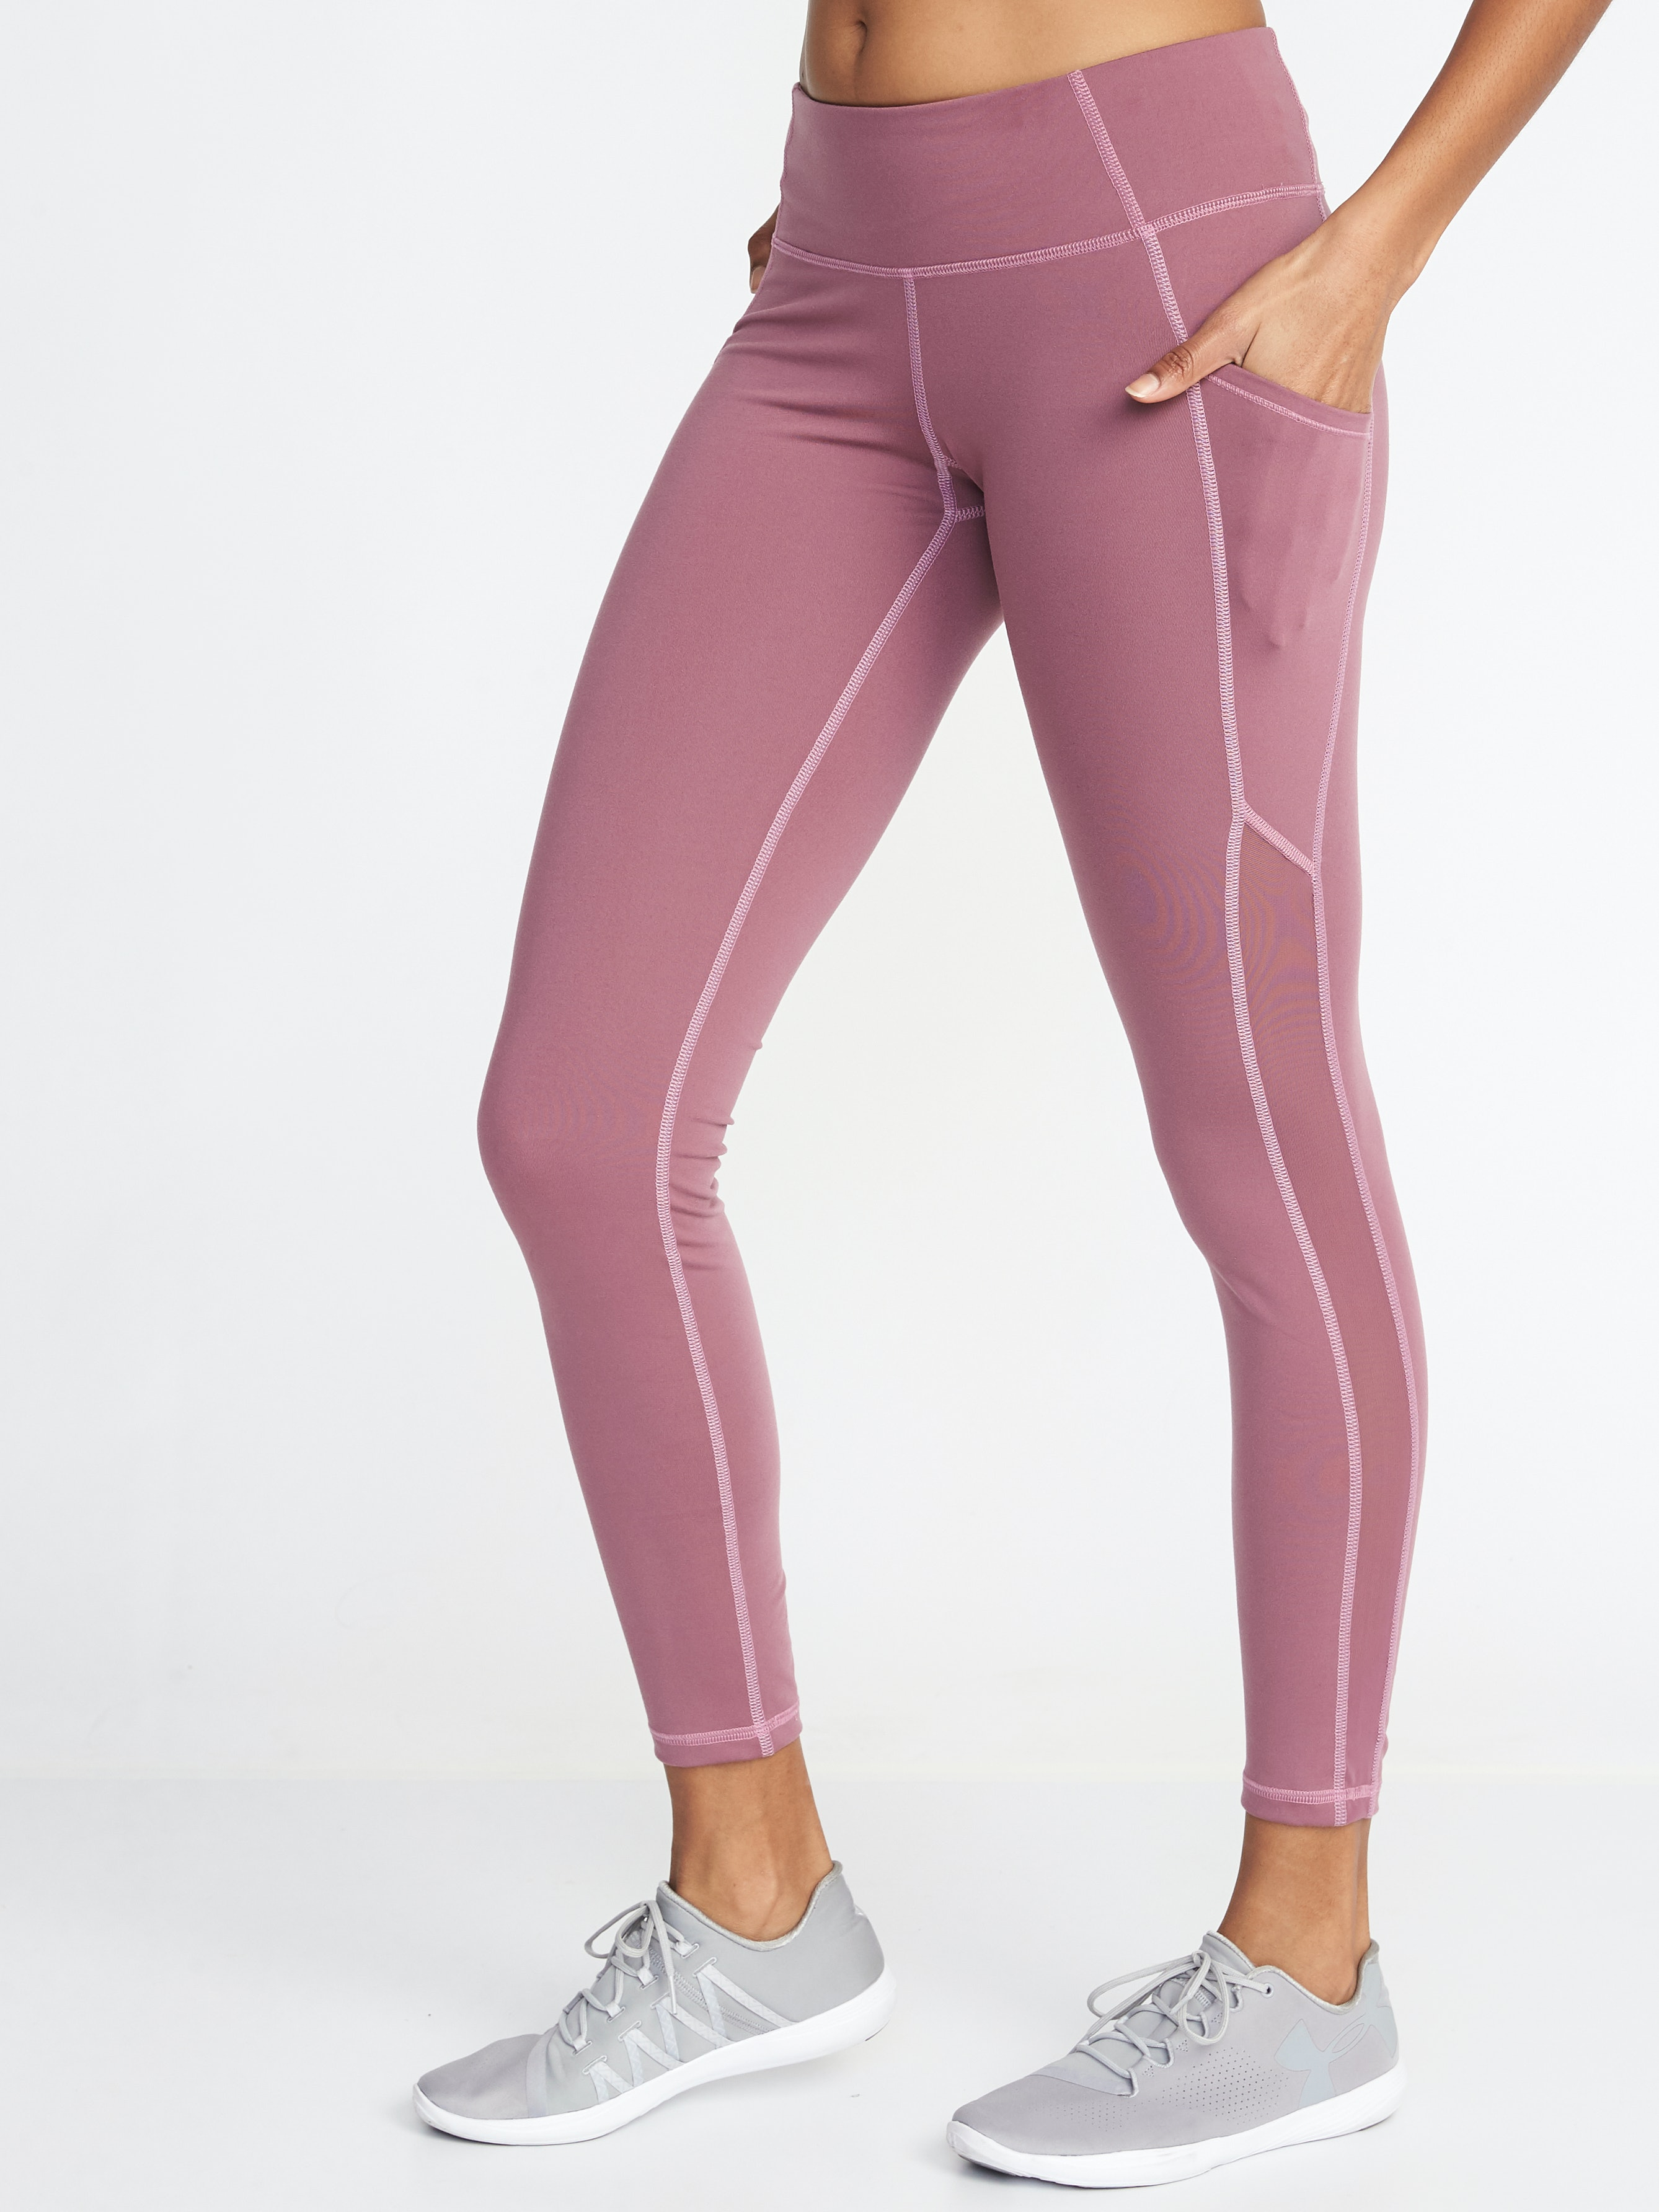 12279f8106adc Old Navy's 2018 Black Friday Athleisure Sale Offers Fit Finds At Half The  Price